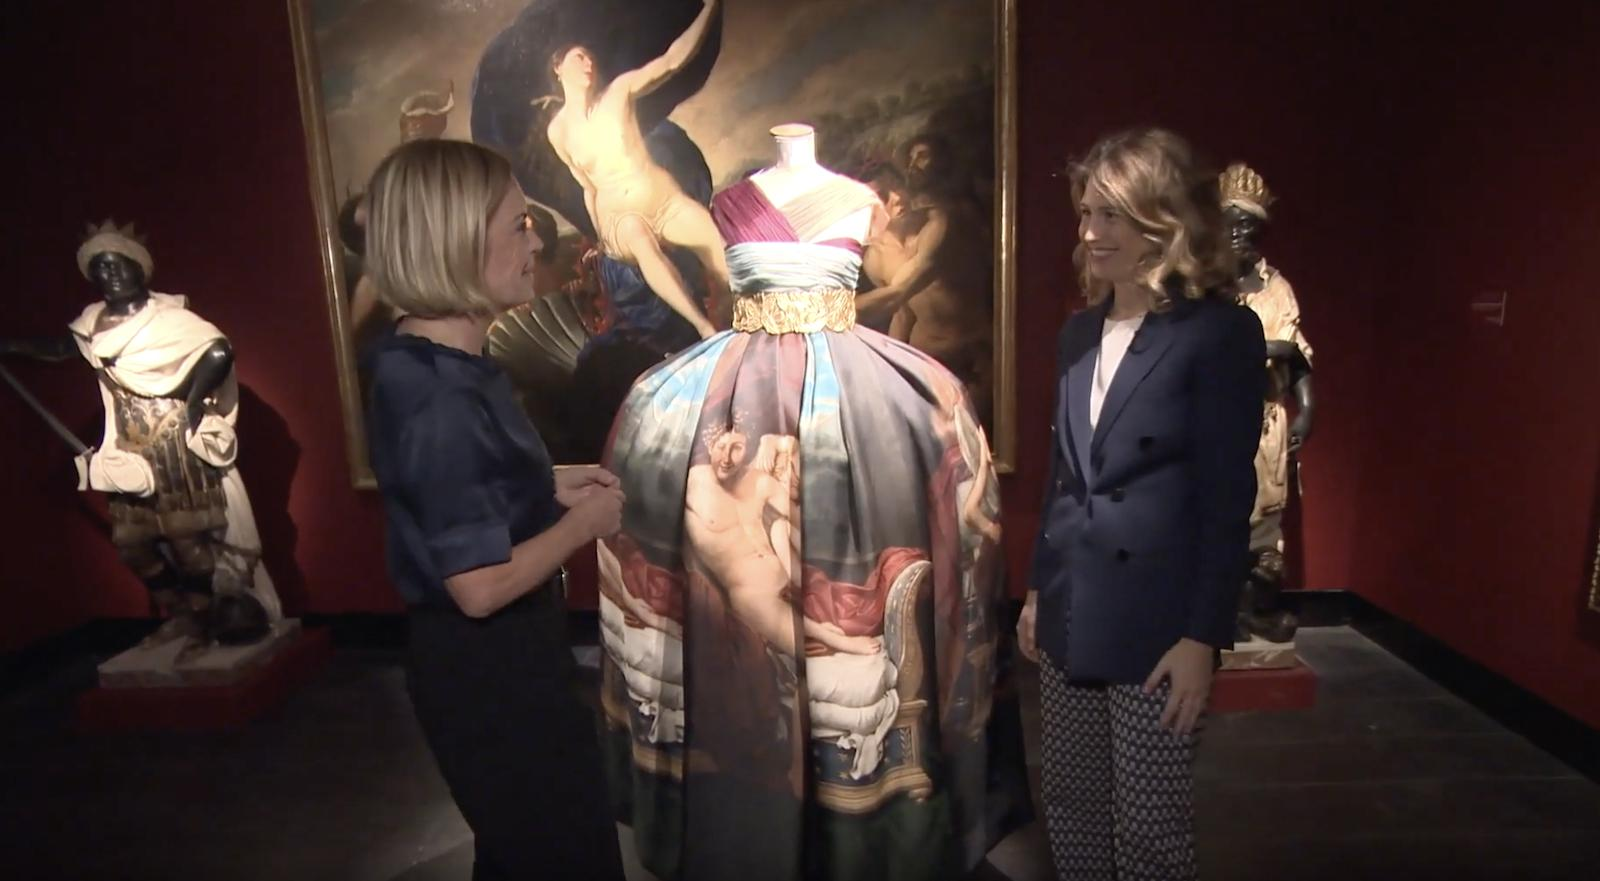 Examining dress with painting in background